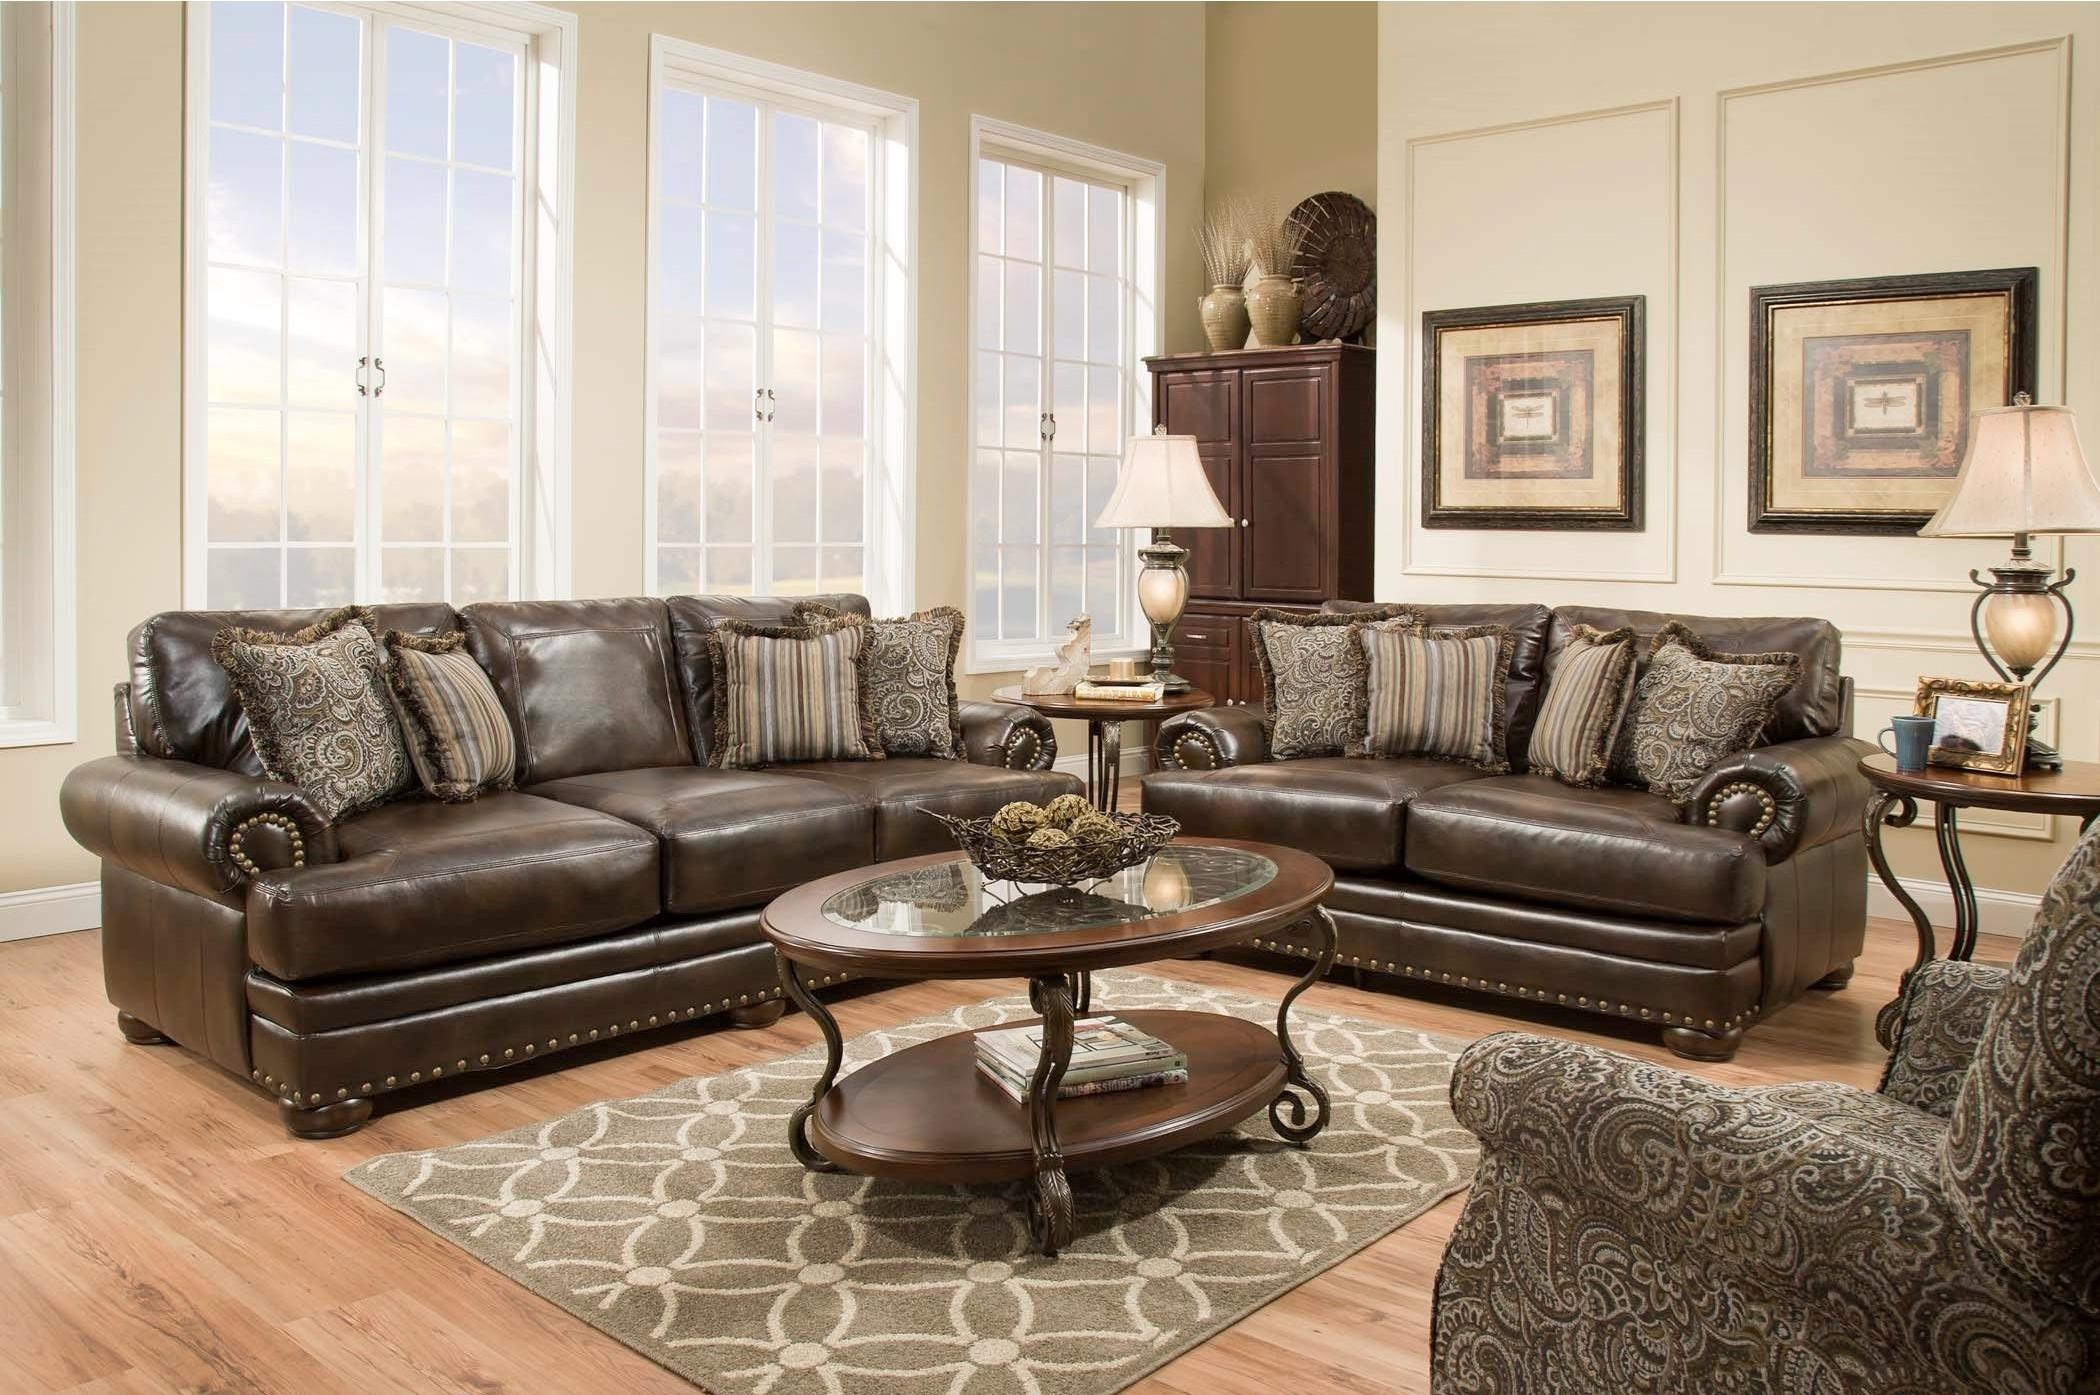 American furniture 6400 sleeper sofa with traditional for American home furniture couches